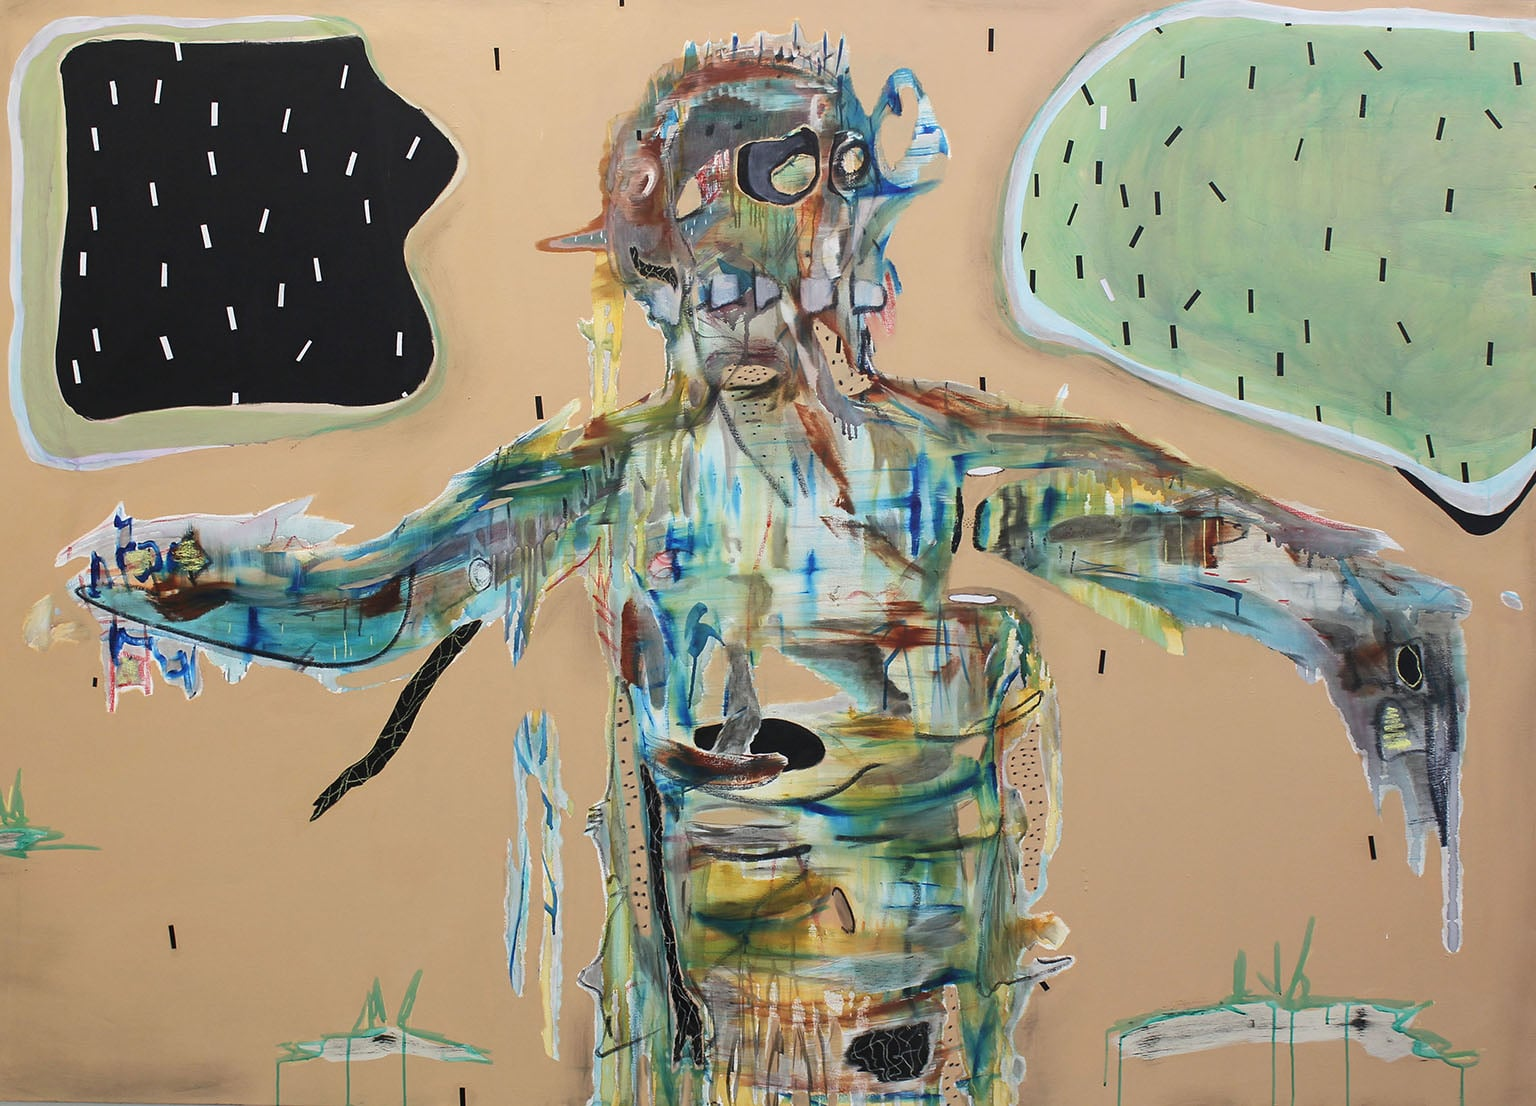 Manuel Mathieu, In the Rain, 2015 - Courtesy of fig-2